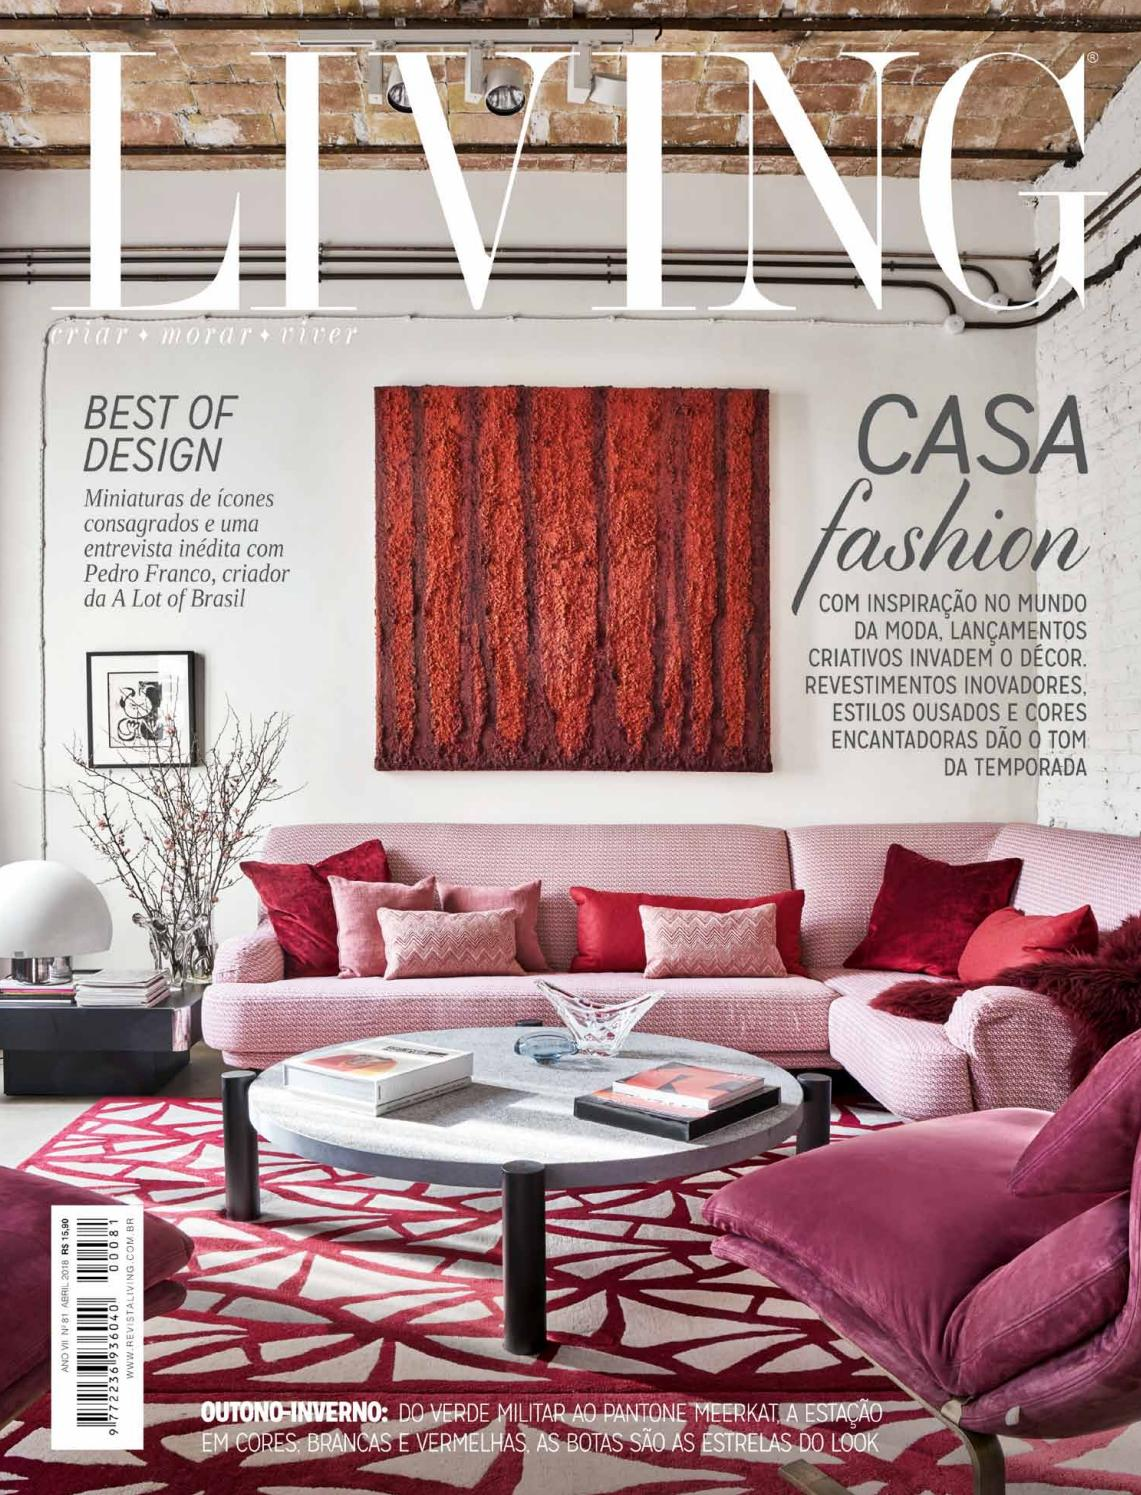 aaca8e8f56fc6 Revista Living - Edição nº 81 Abril 2018 by Revista Living - issuu